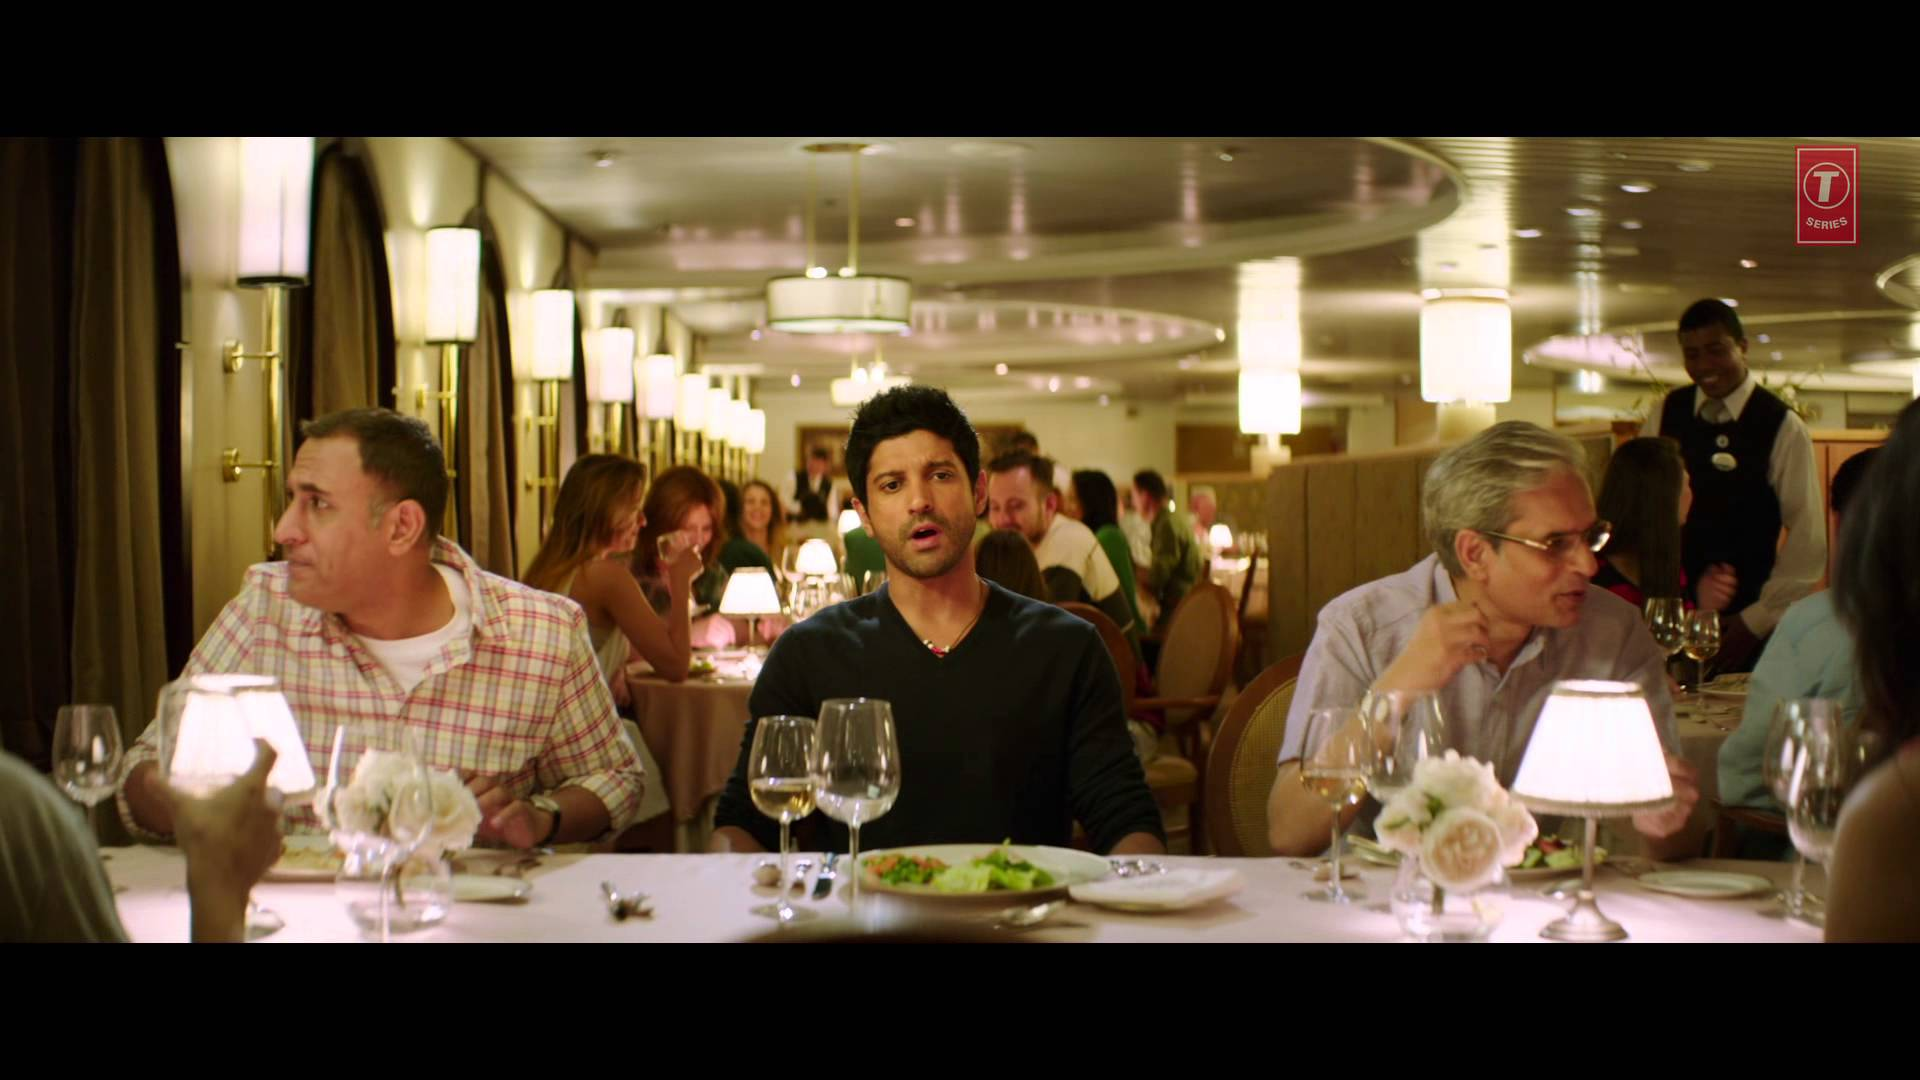 Phir Bhi Yeh Zindagi Video Song – Dil Dhadakne Do | Official Video Song